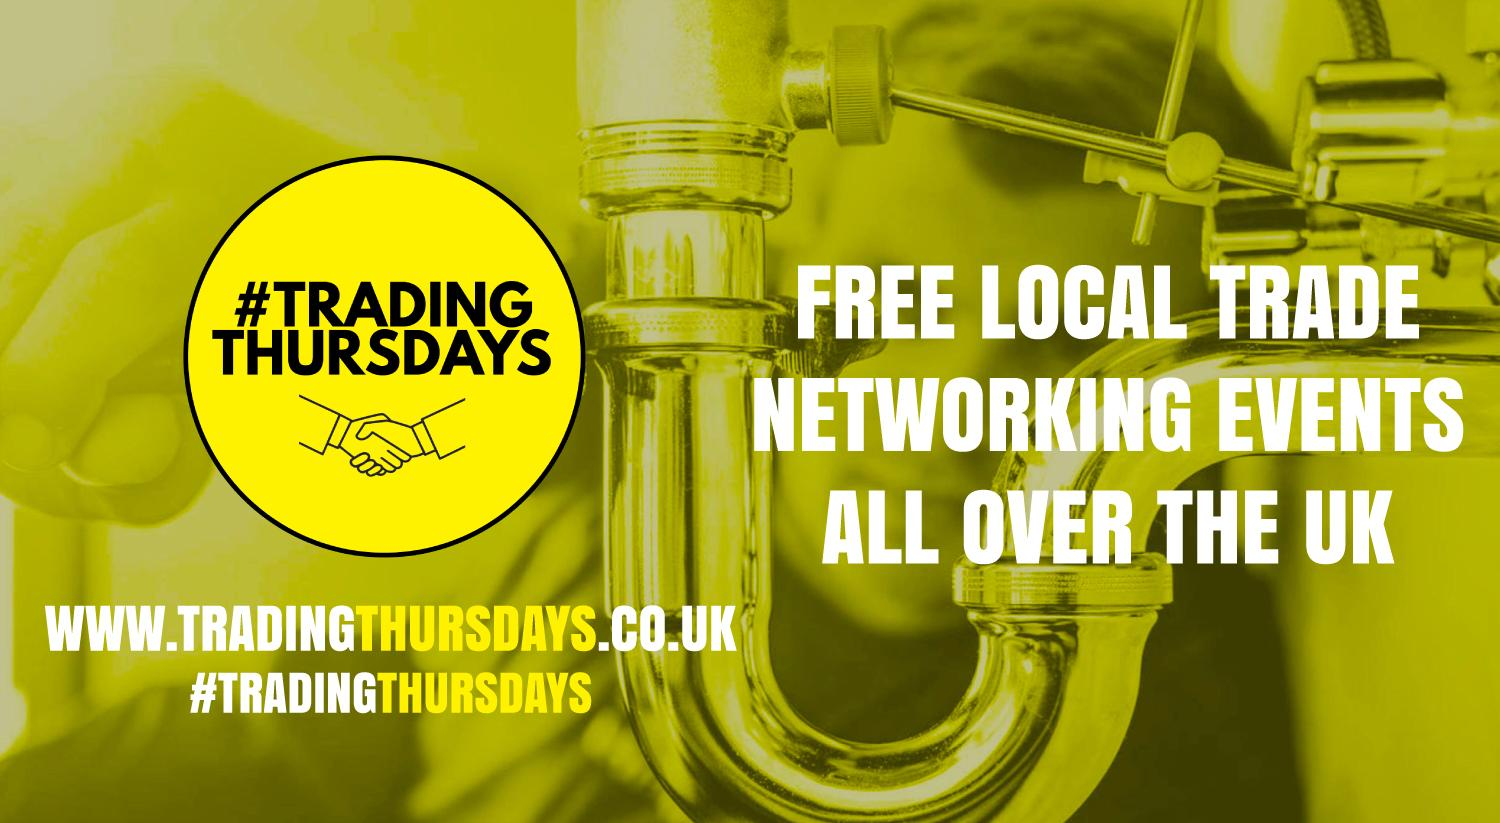 Trading Thursdays! Free networking event for traders in Bradford